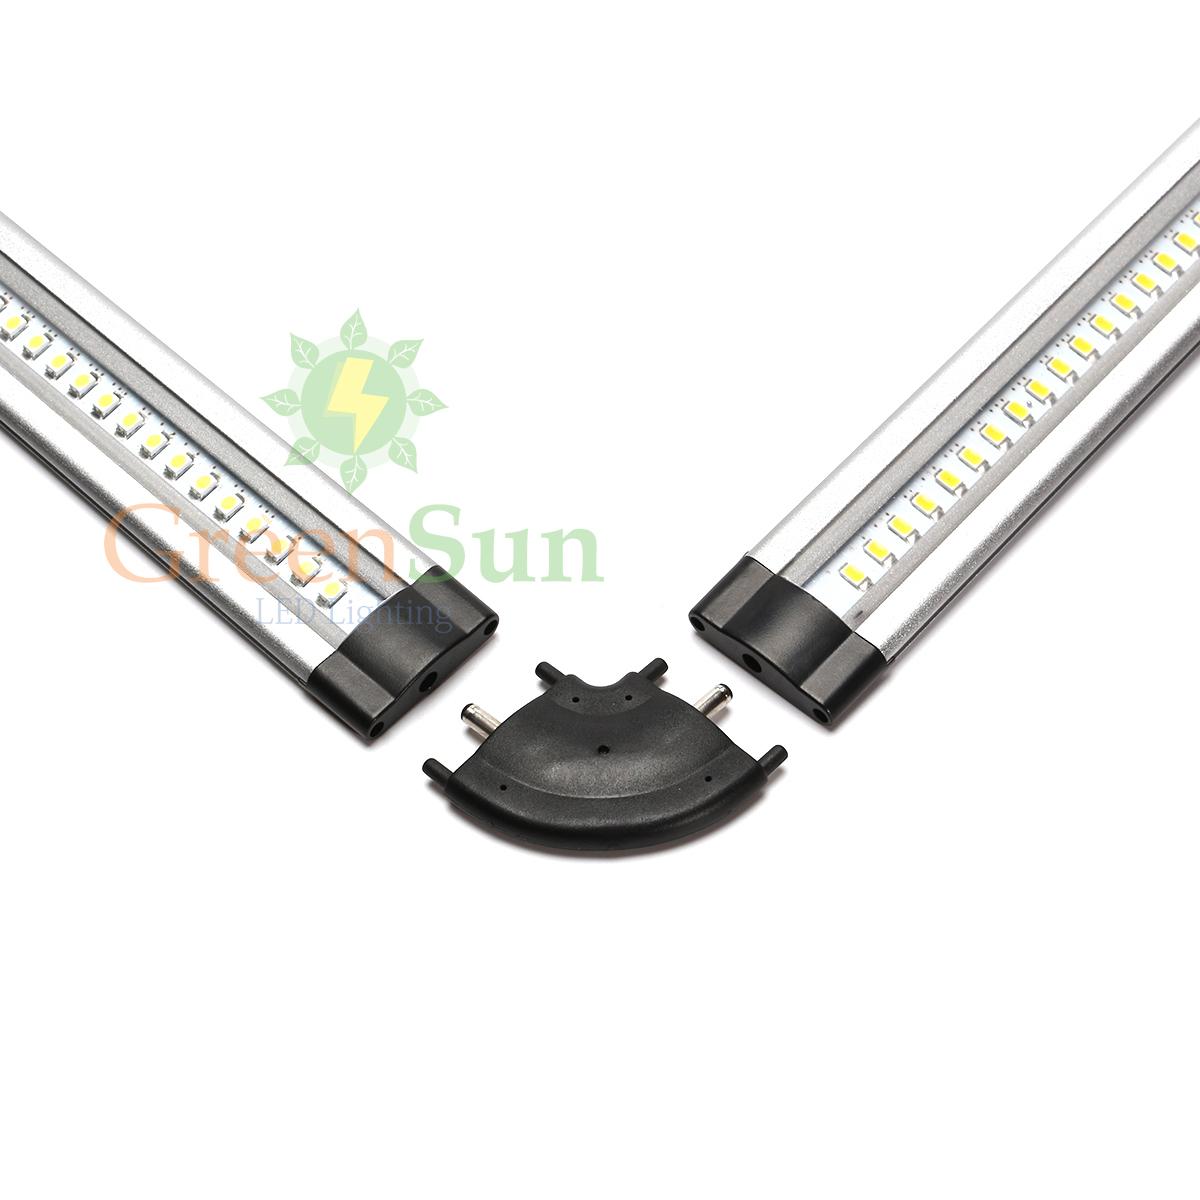 6PCs 30cm SMD Kitchen Under Cabinet Counter LED Light Lamp